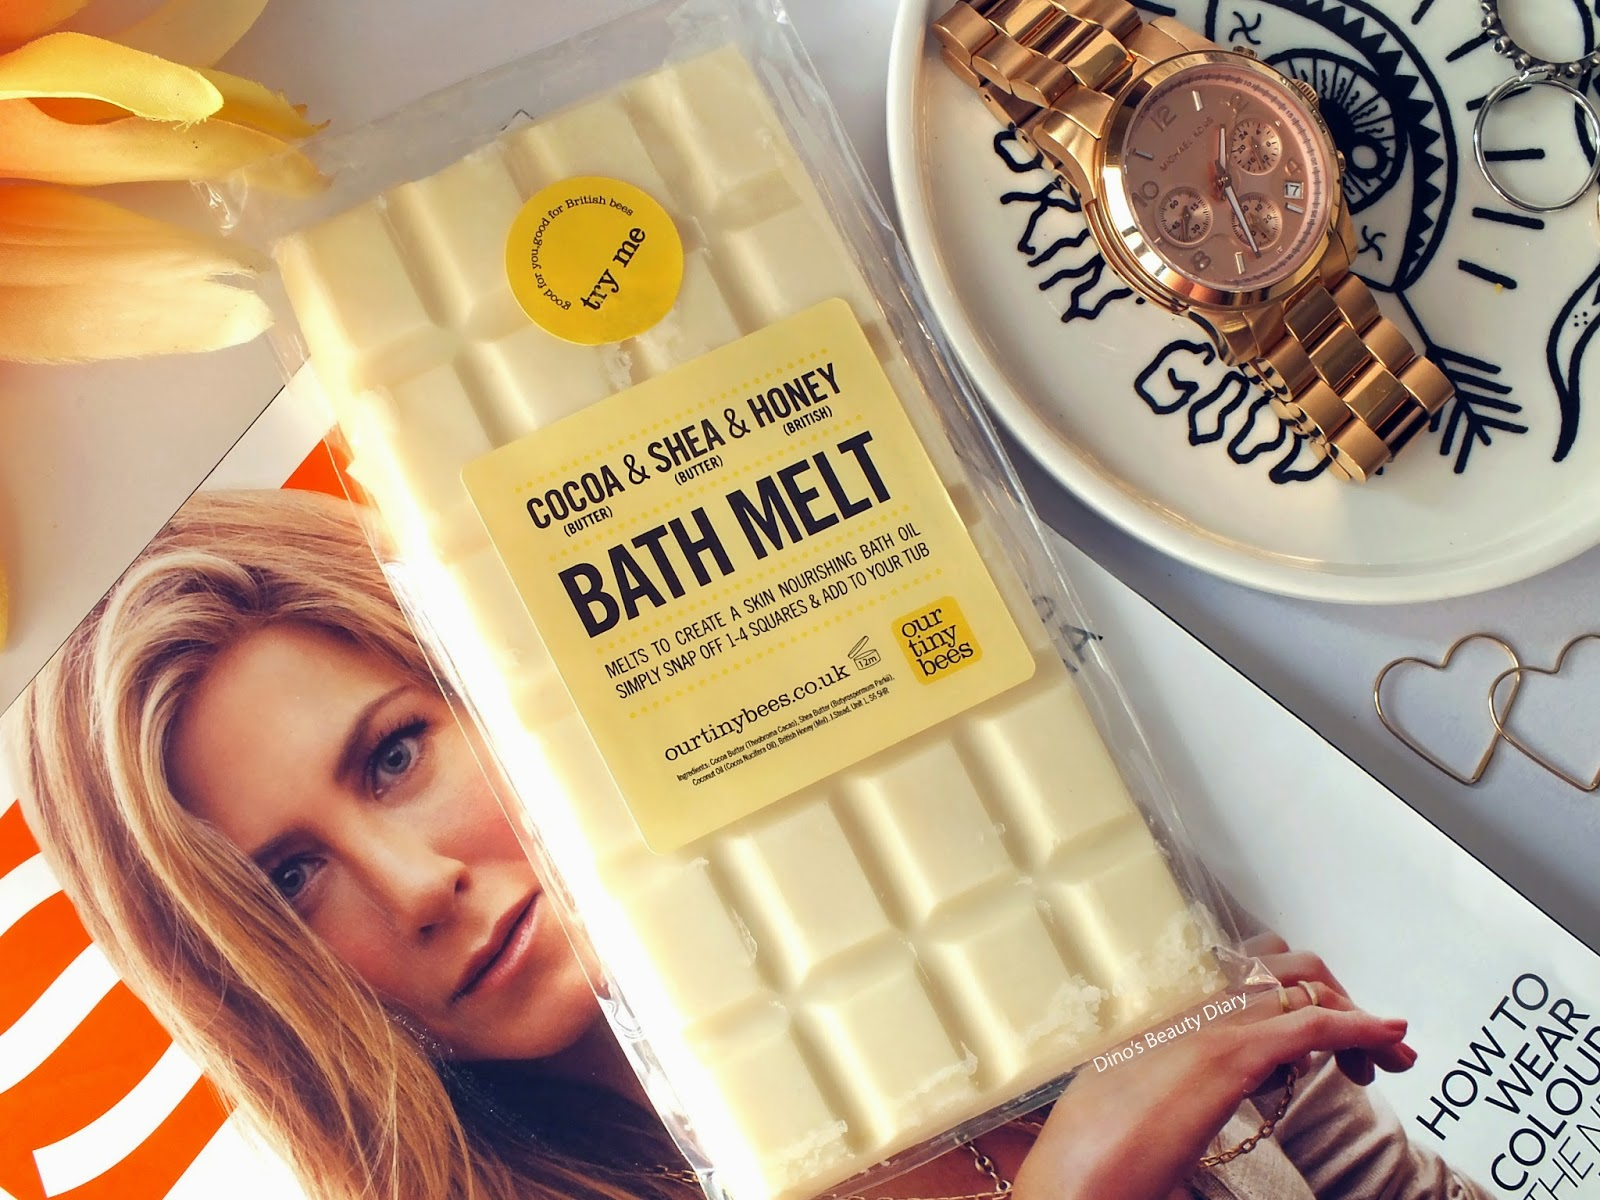 Dino's Beauty Diary - Bath & Body Review - Our Tiny Bees 'Cocoa, Shea and Honey' Bath Melt